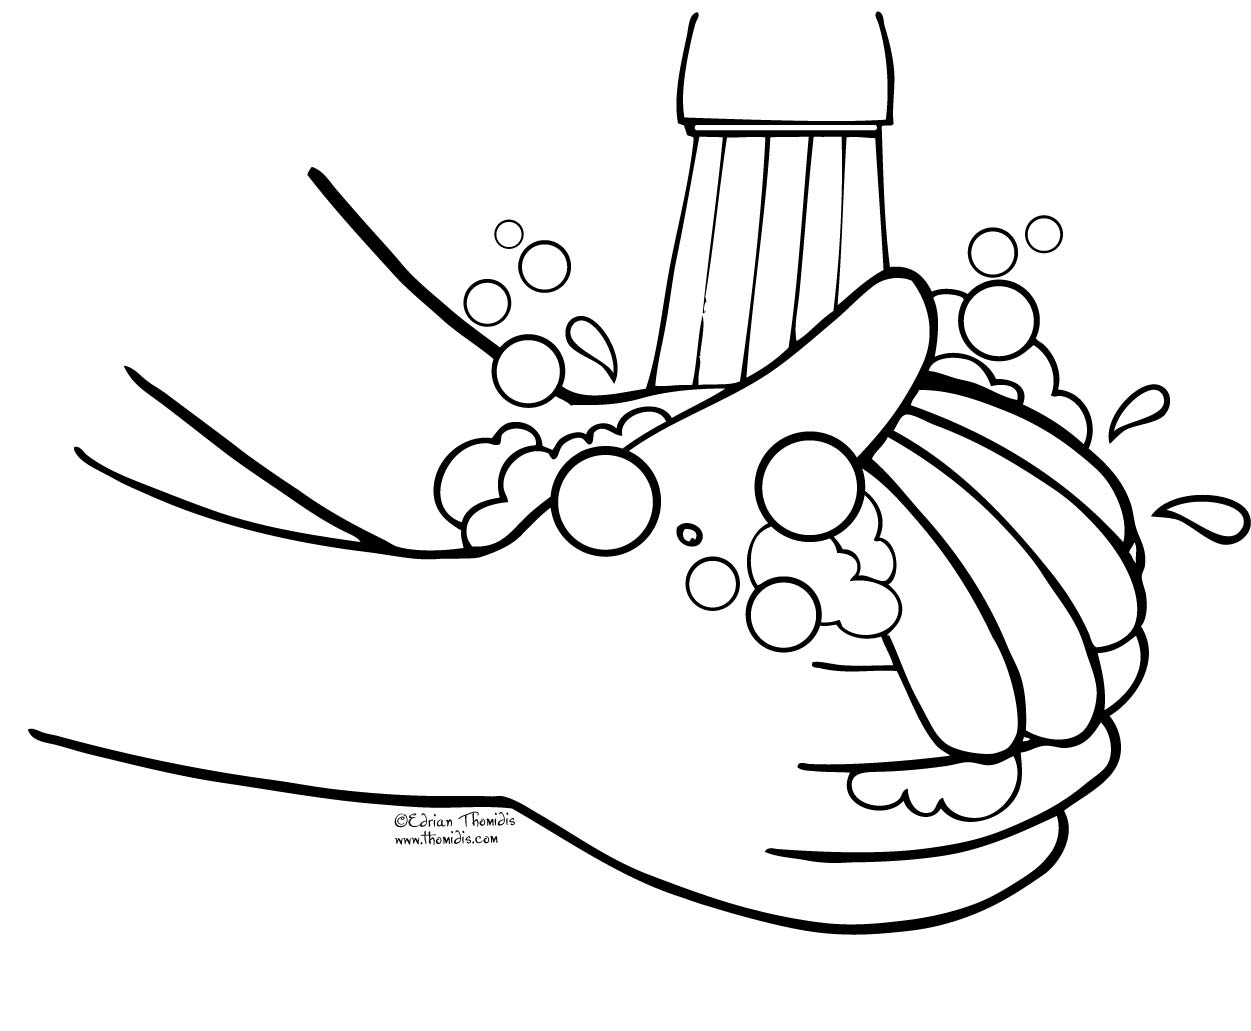 graphic stock Wash clipart outline. Your hands black and